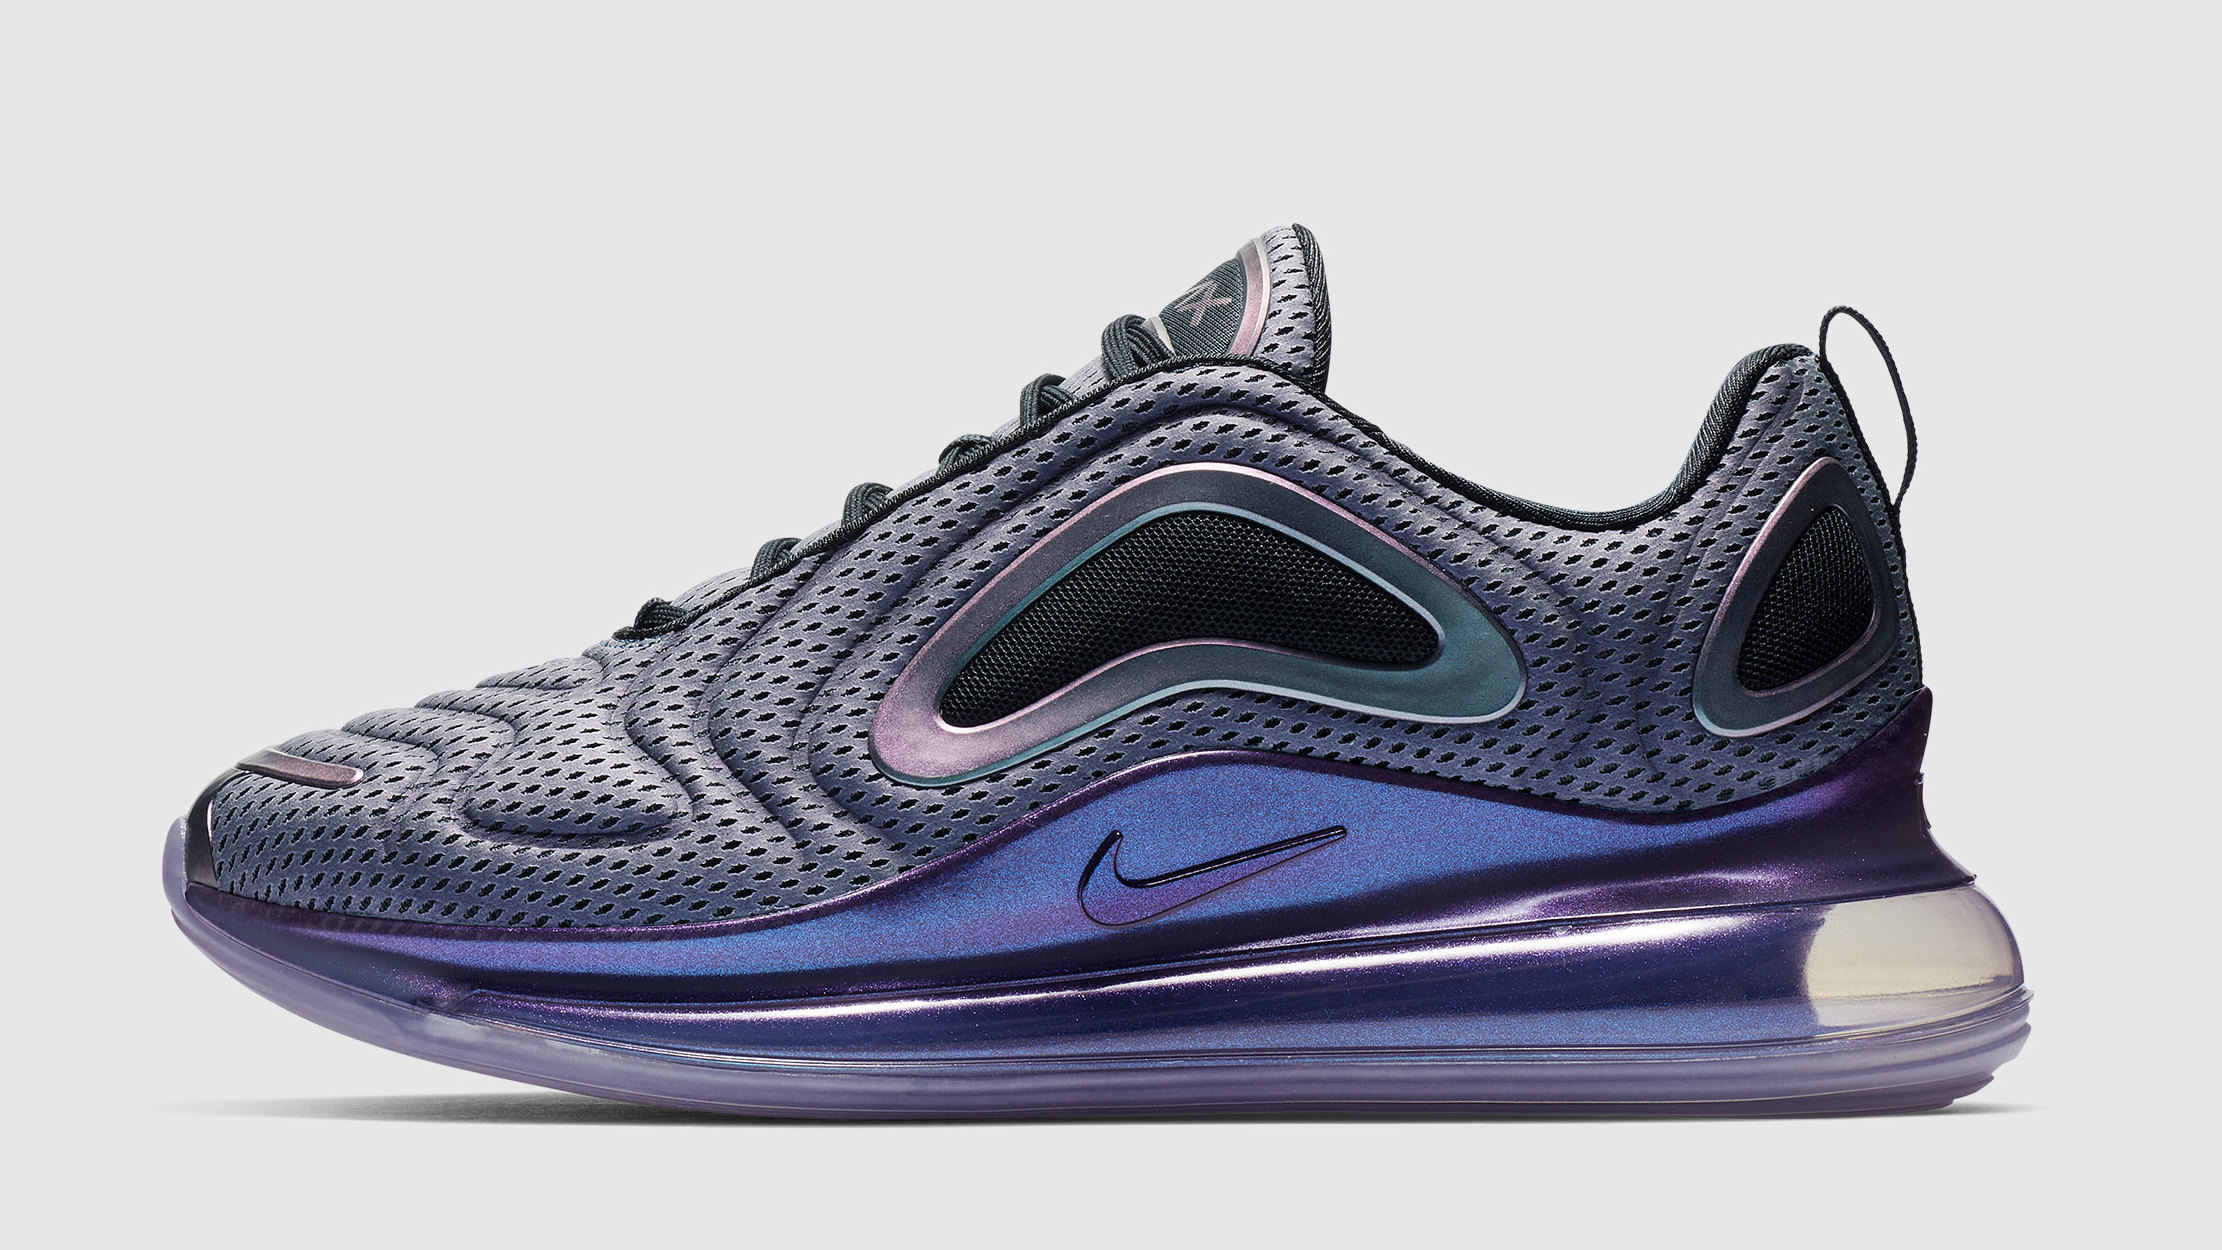 c7b000f328 Nike Air Max 720 Launch Colorways Release Date | Sole Collector